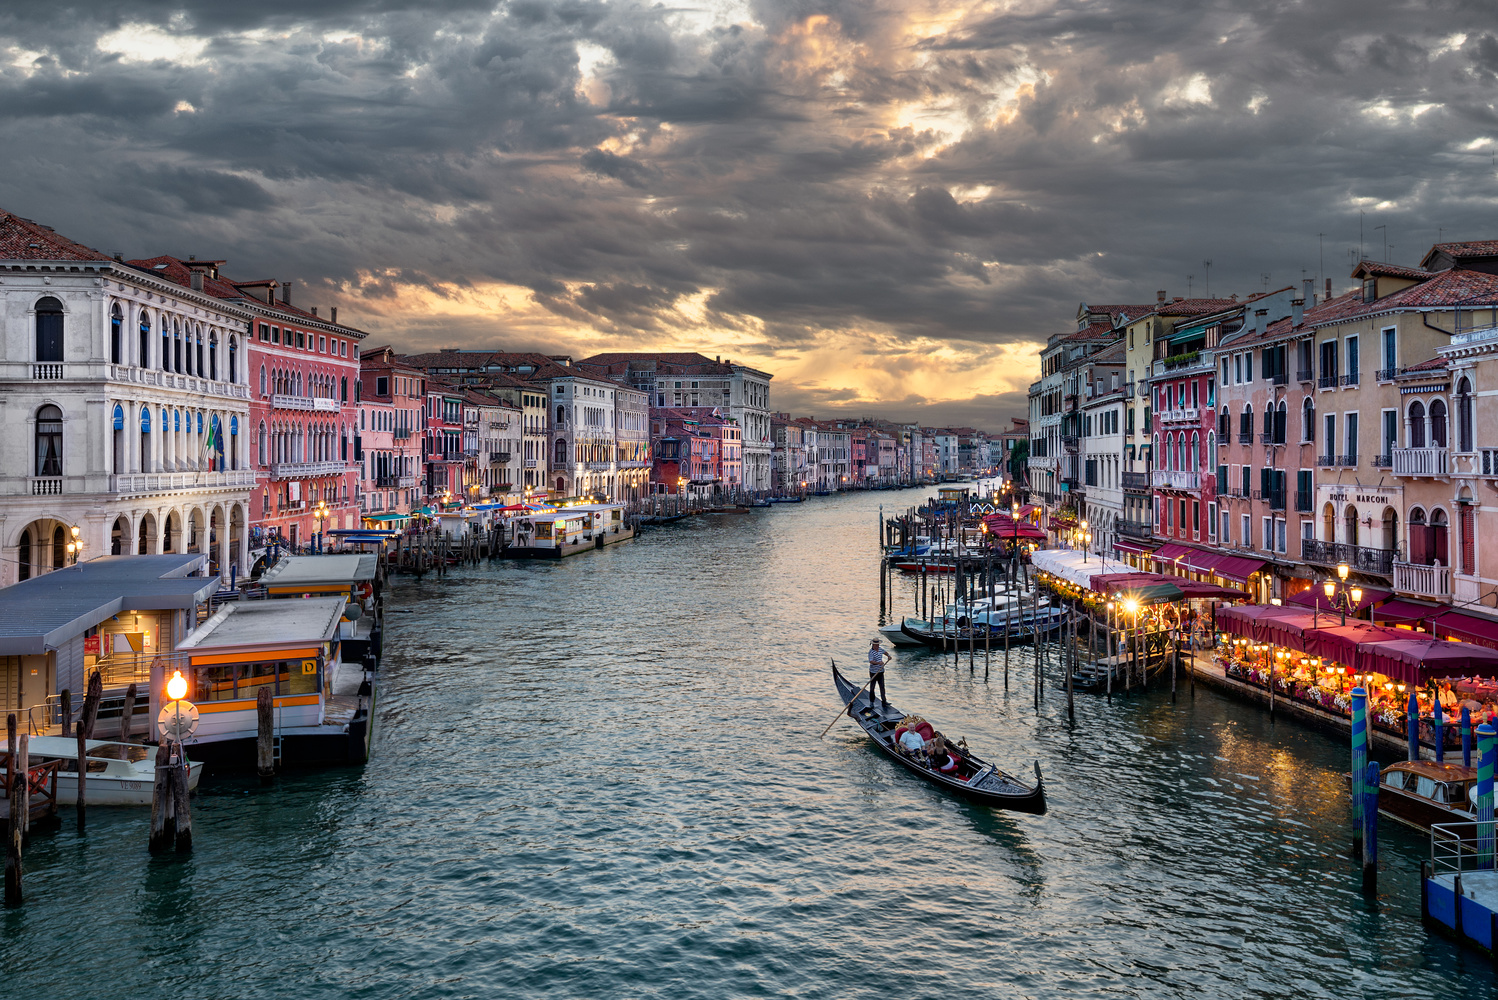 The Grand Canal by Chris Ward